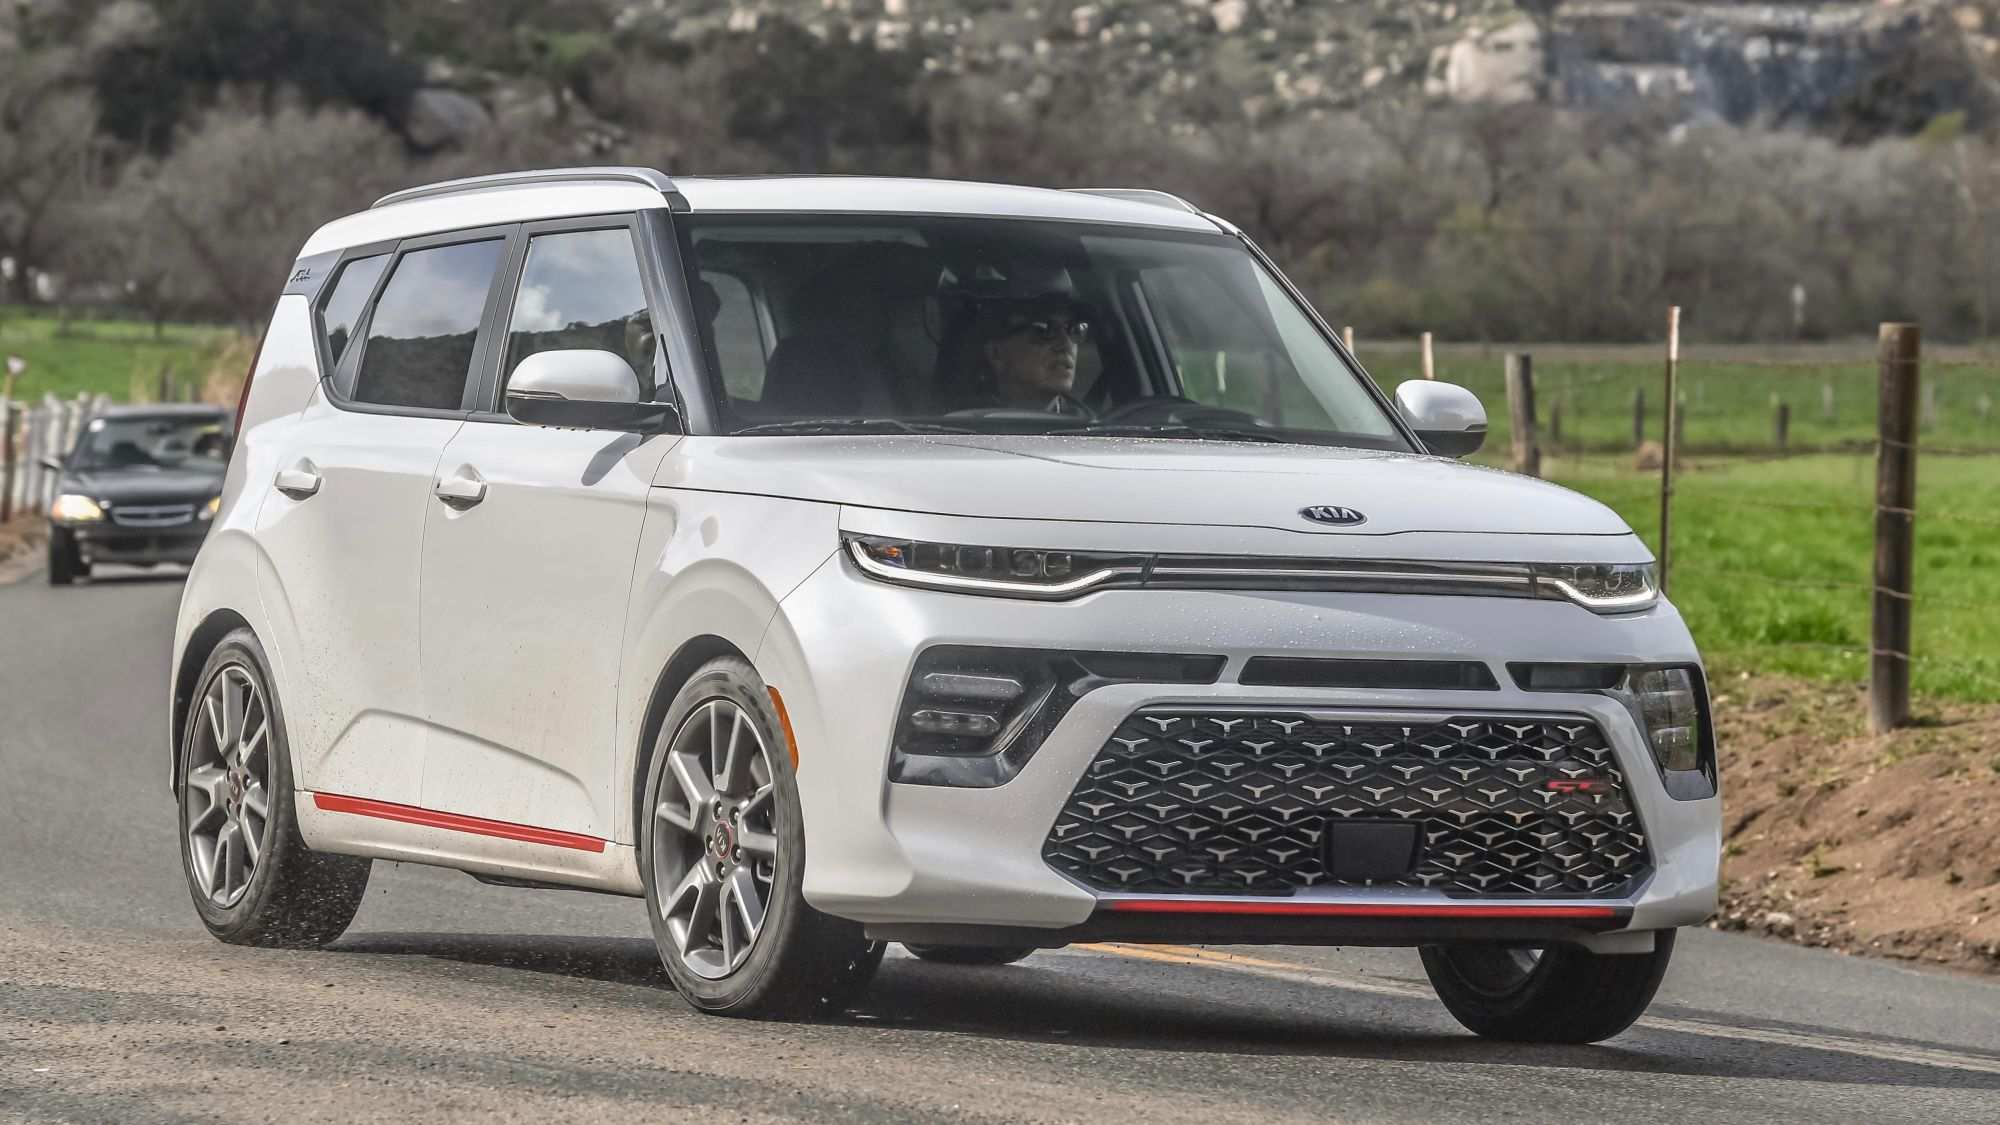 87 The 2020 Kia Soul Gt Turbo Model